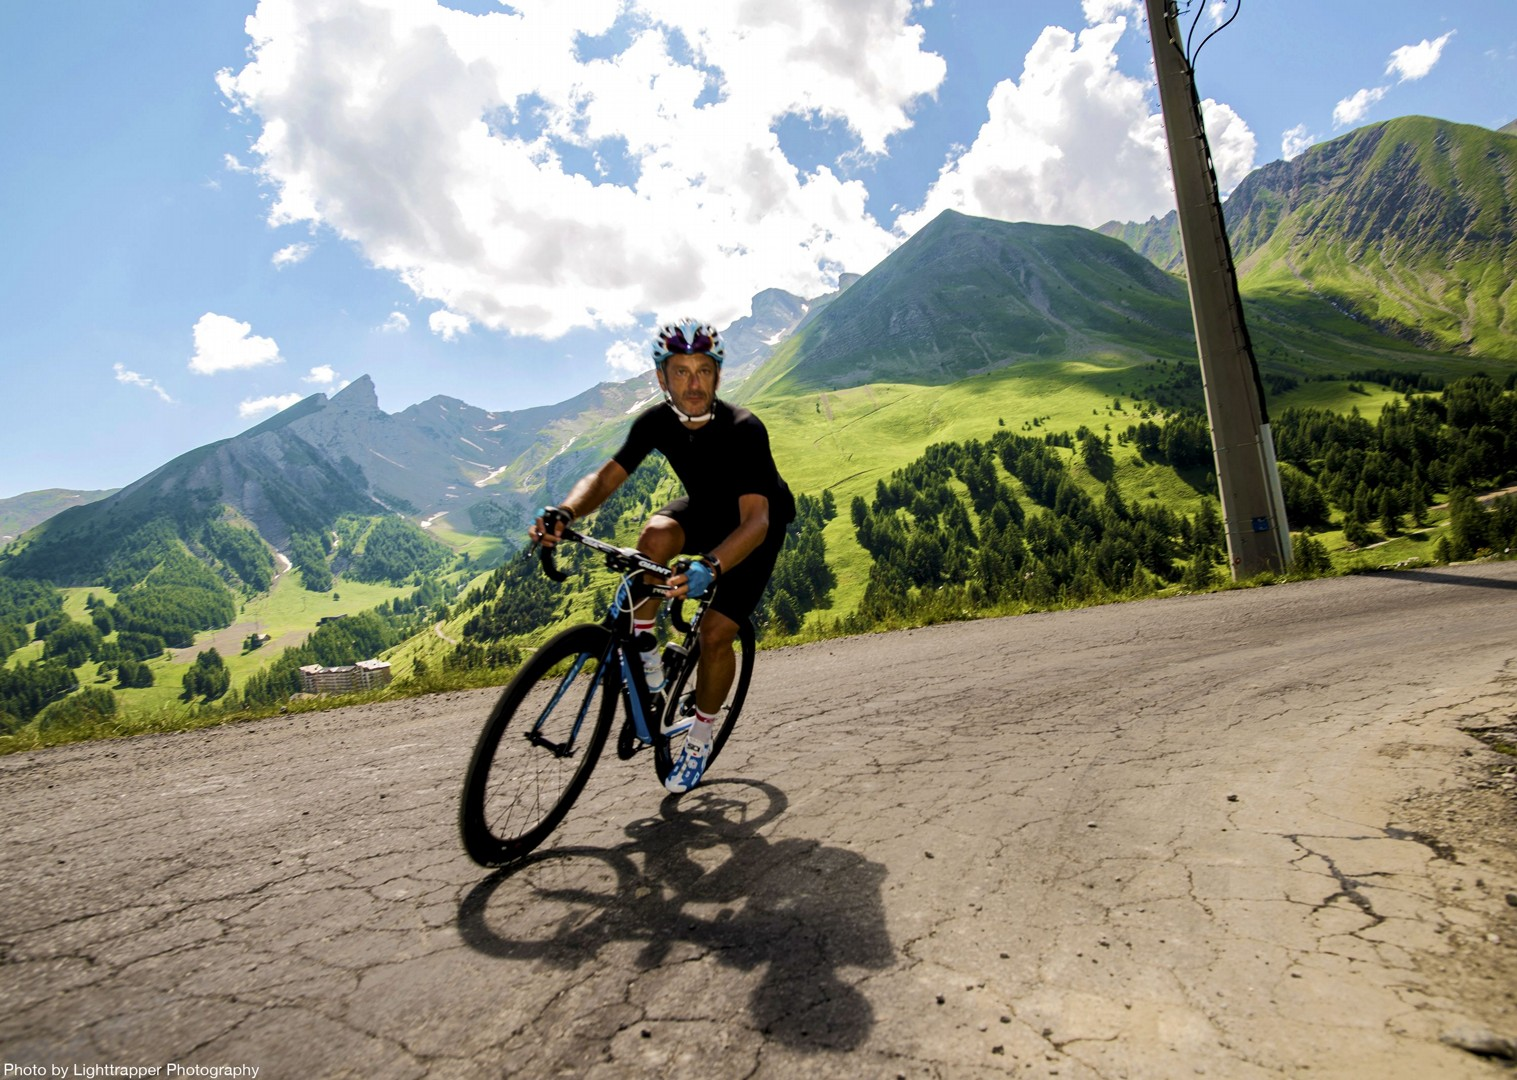 open-road-scenic-france-raid-alpine-cycling-holiday.jpg - France - Raid Alpine - Guided Road Cycling Holiday - Road Cycling